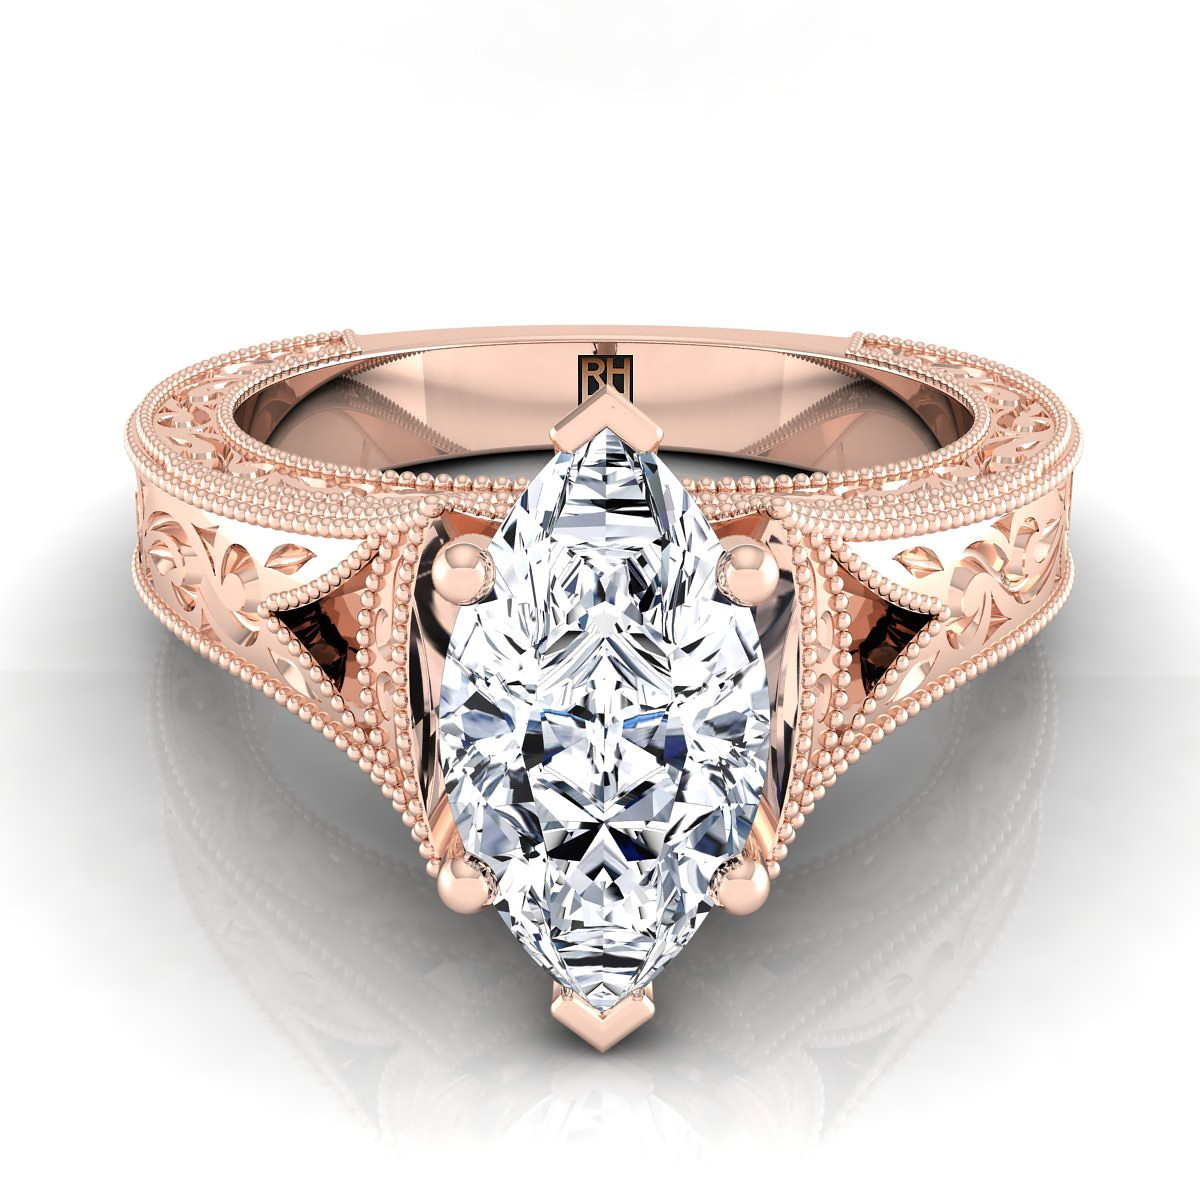 Marquise Antique Inspired Engraved Diamond Engagement Ring With Millgrain Finish In 14k Rose Gold